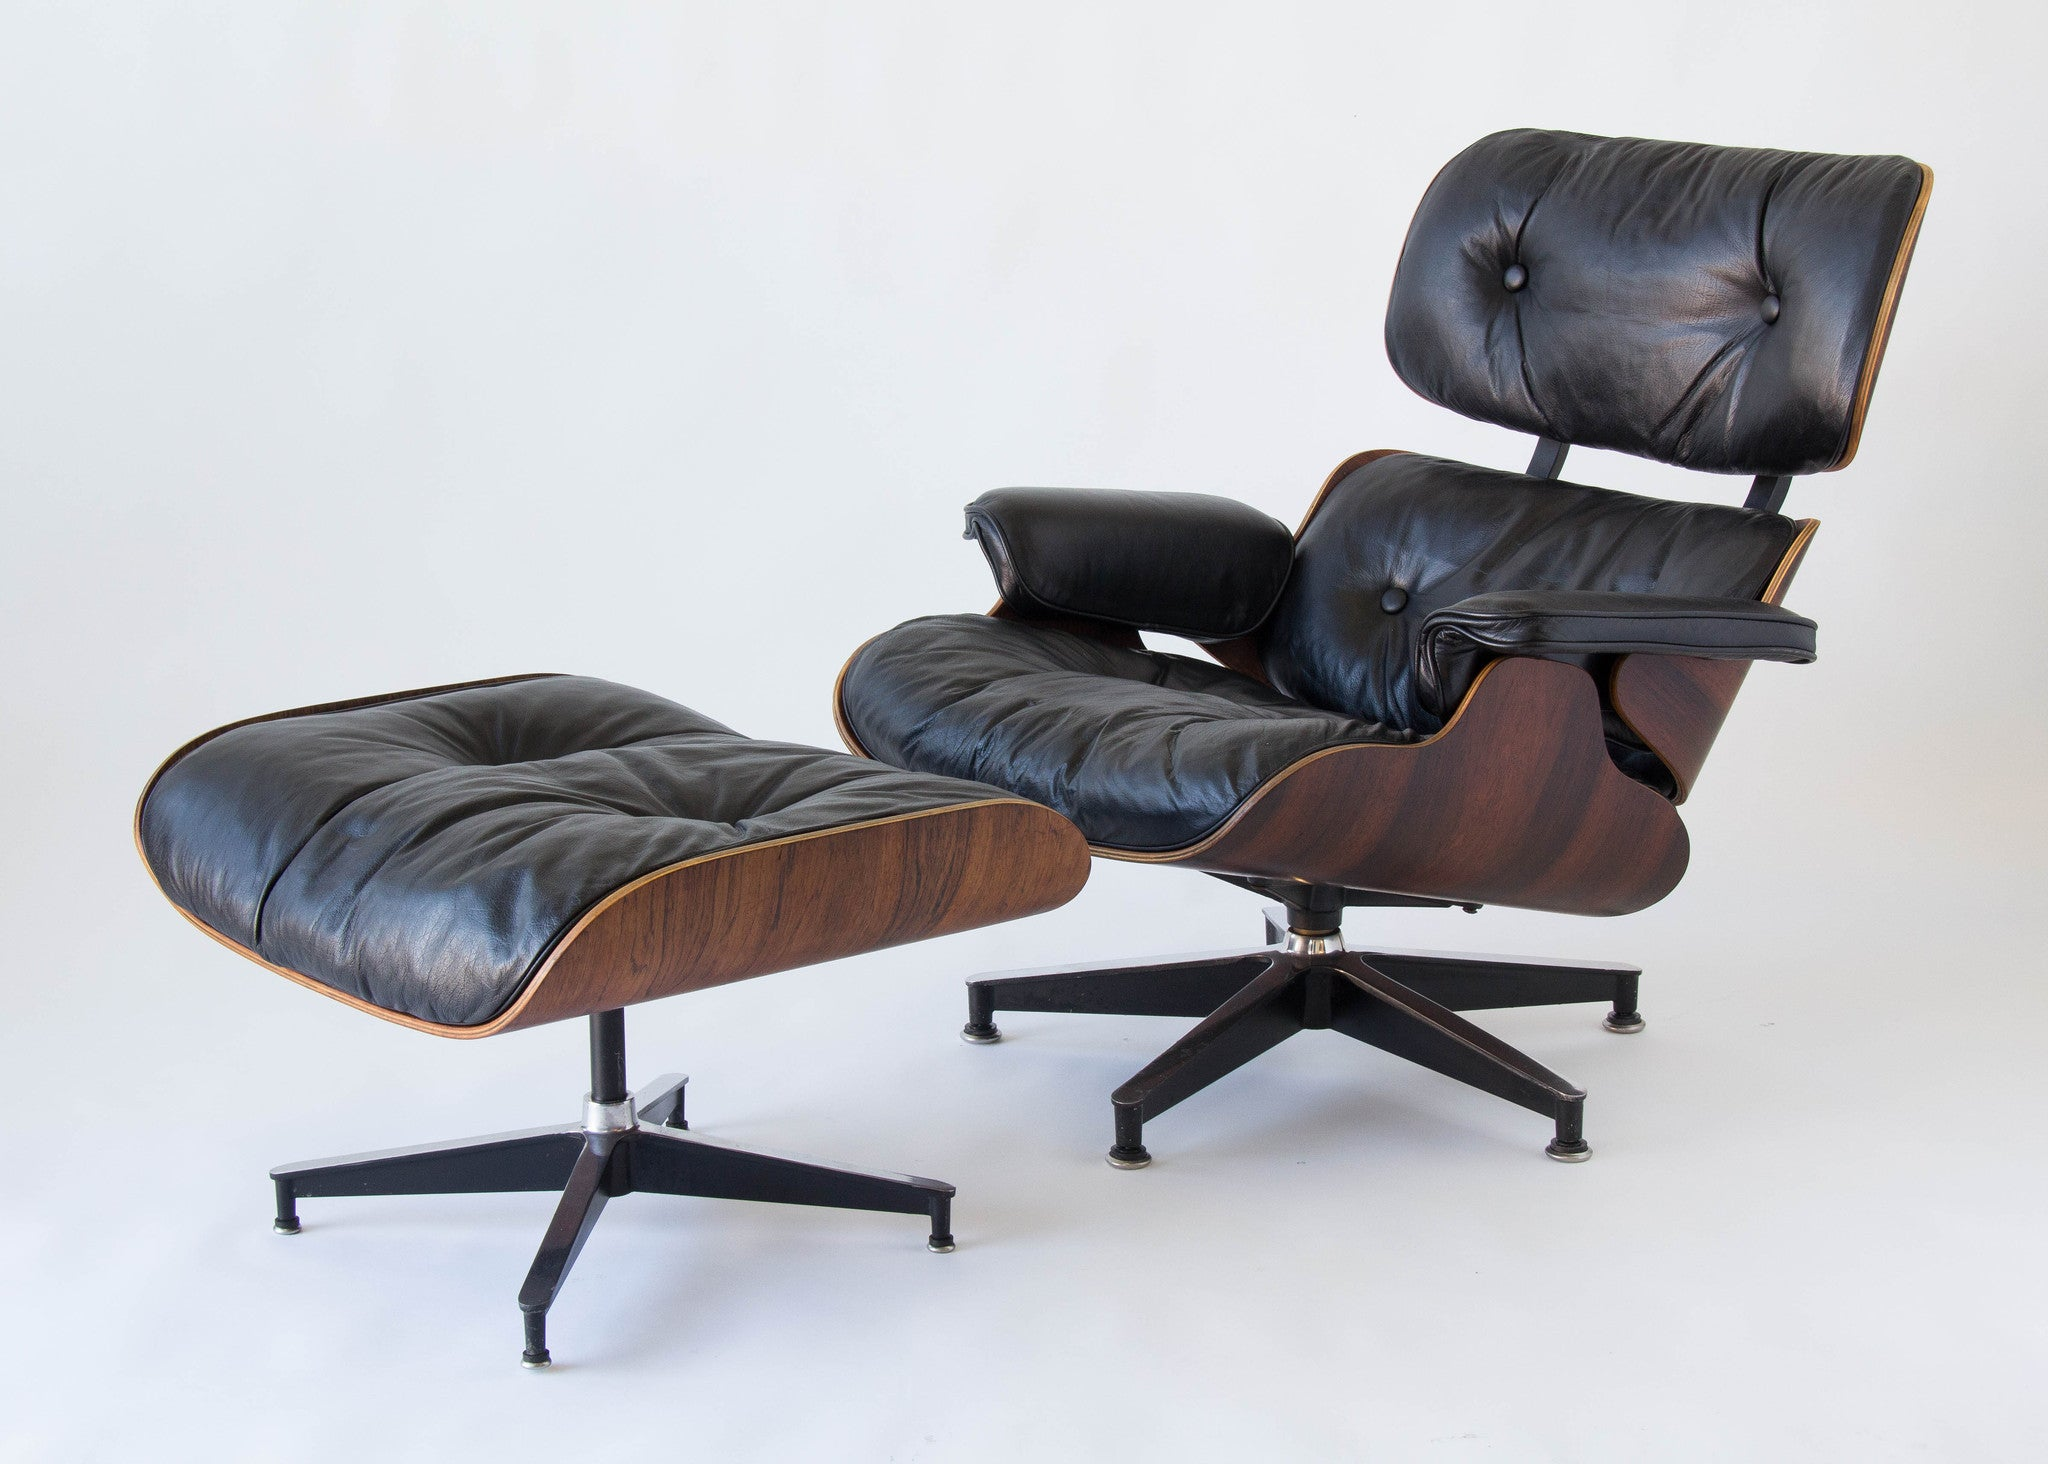 1960s Eames 670 671 Lounge Chair with Ottoman – Den M¸bler